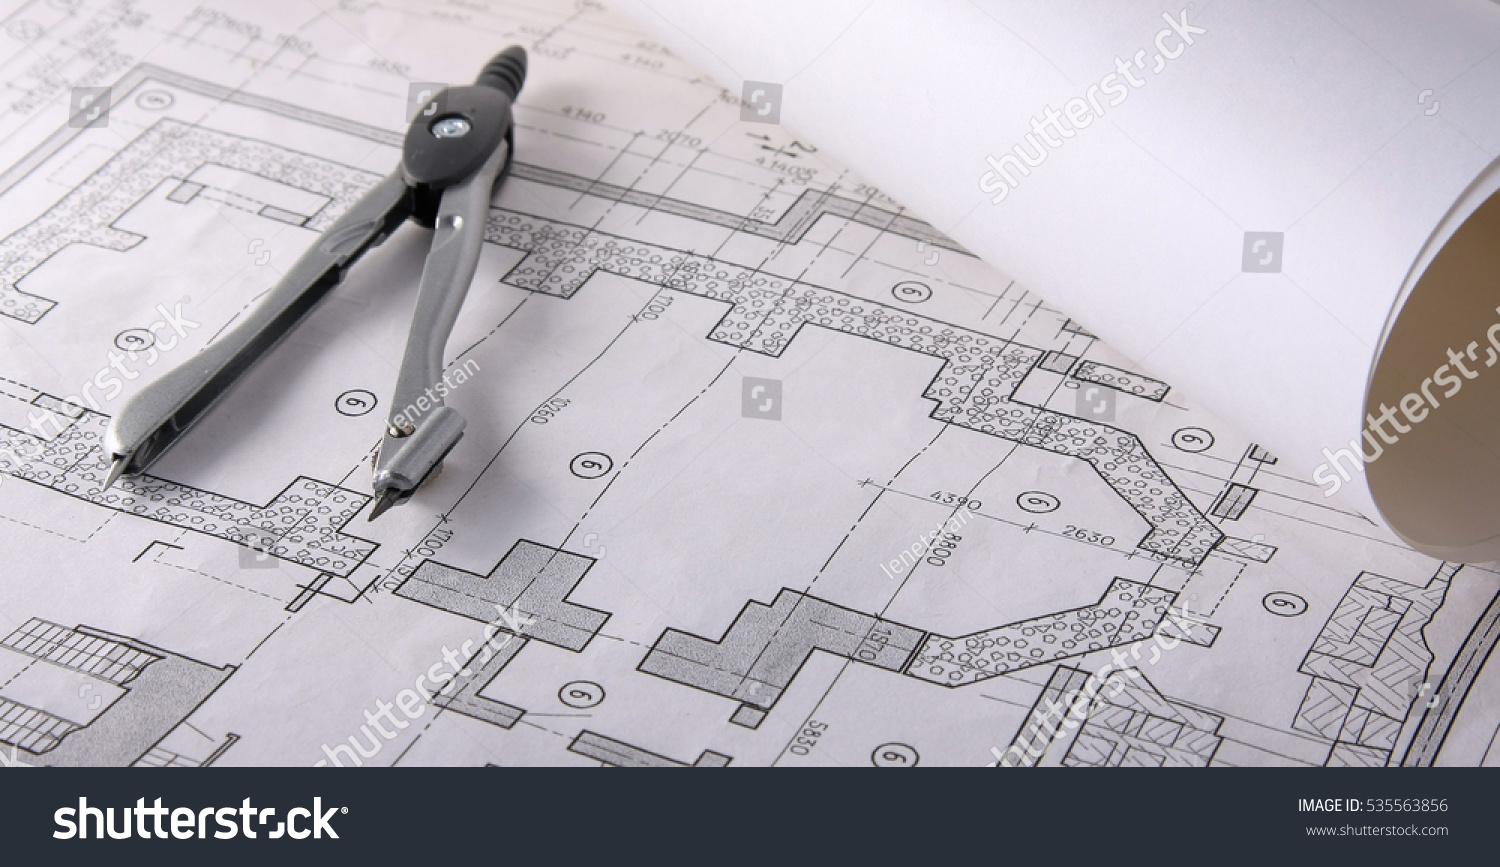 Architectural Plans Compass And Ruler On The Desk Ez Canvas Schematic Id 535563856